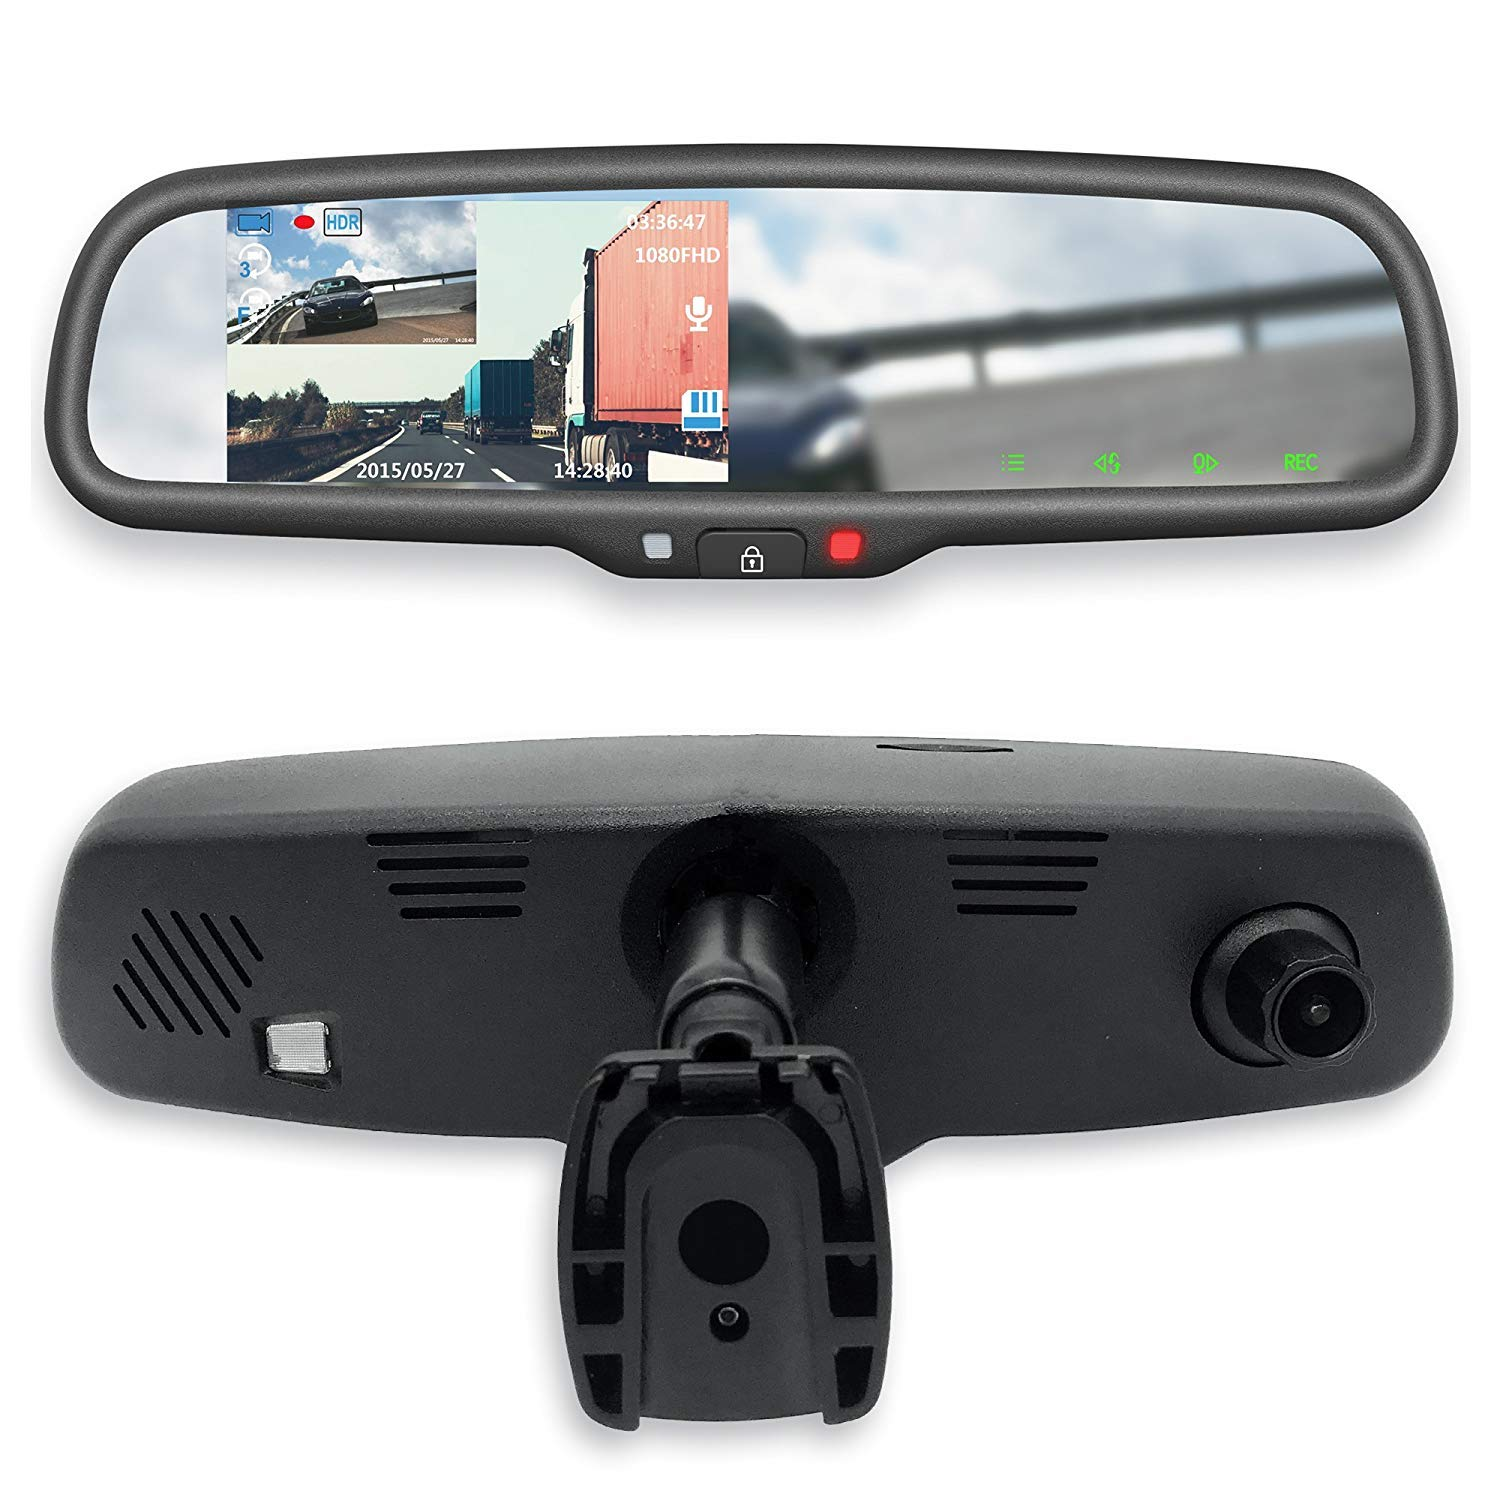 """Master Tailgaters 4.3"""" LCD Rear View Mirror with 1080P 30FPS, 720P 60FPS HD DVR Recorder with Superior Night Vision + Backup Camera Enabled"""